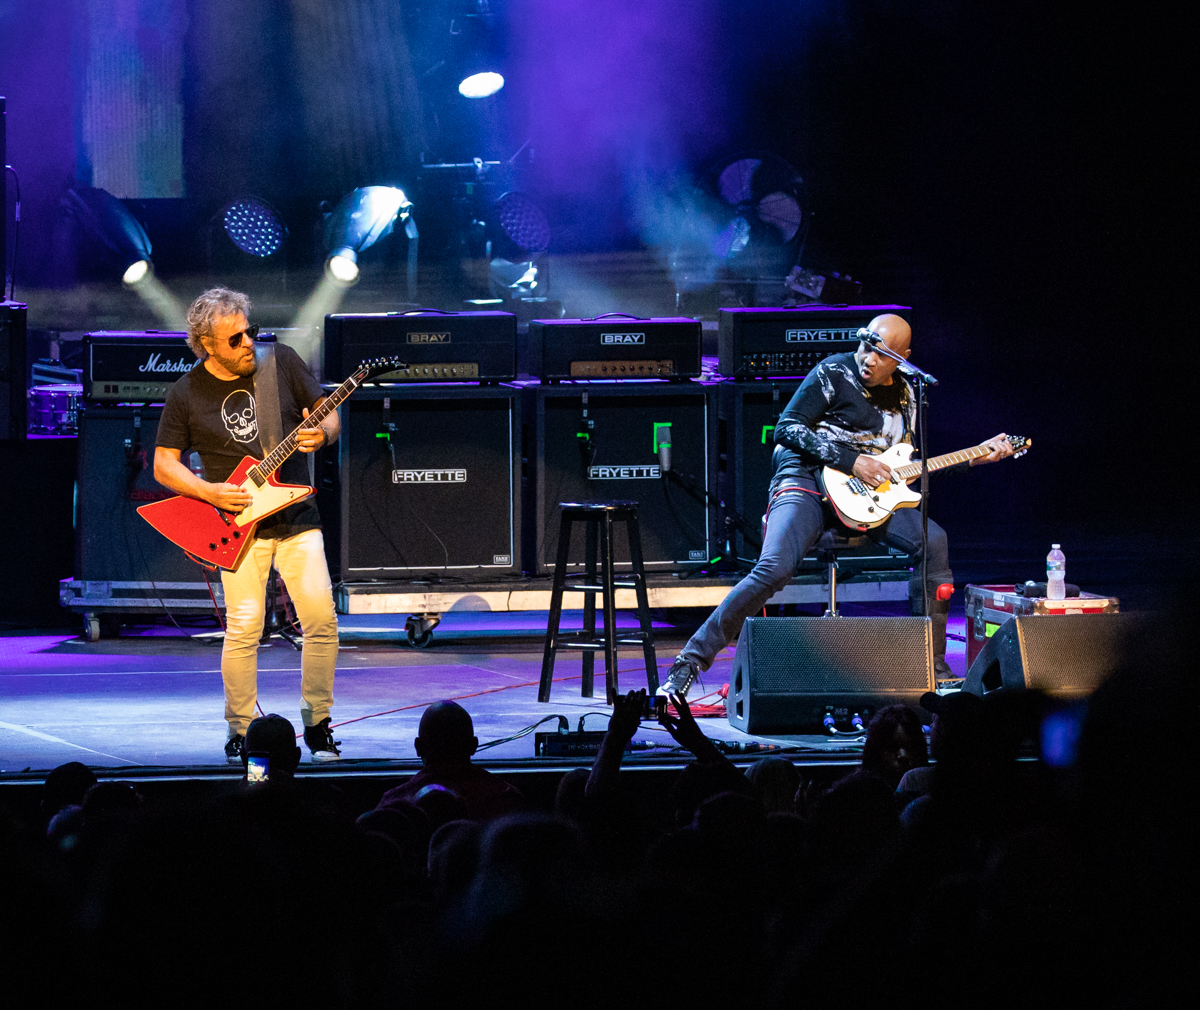 Sammy Hagar and Vic Johnson of The Circle perform at Hollywood Casino Amphitheatre in Tinley Park, IL on 06/07/2019.